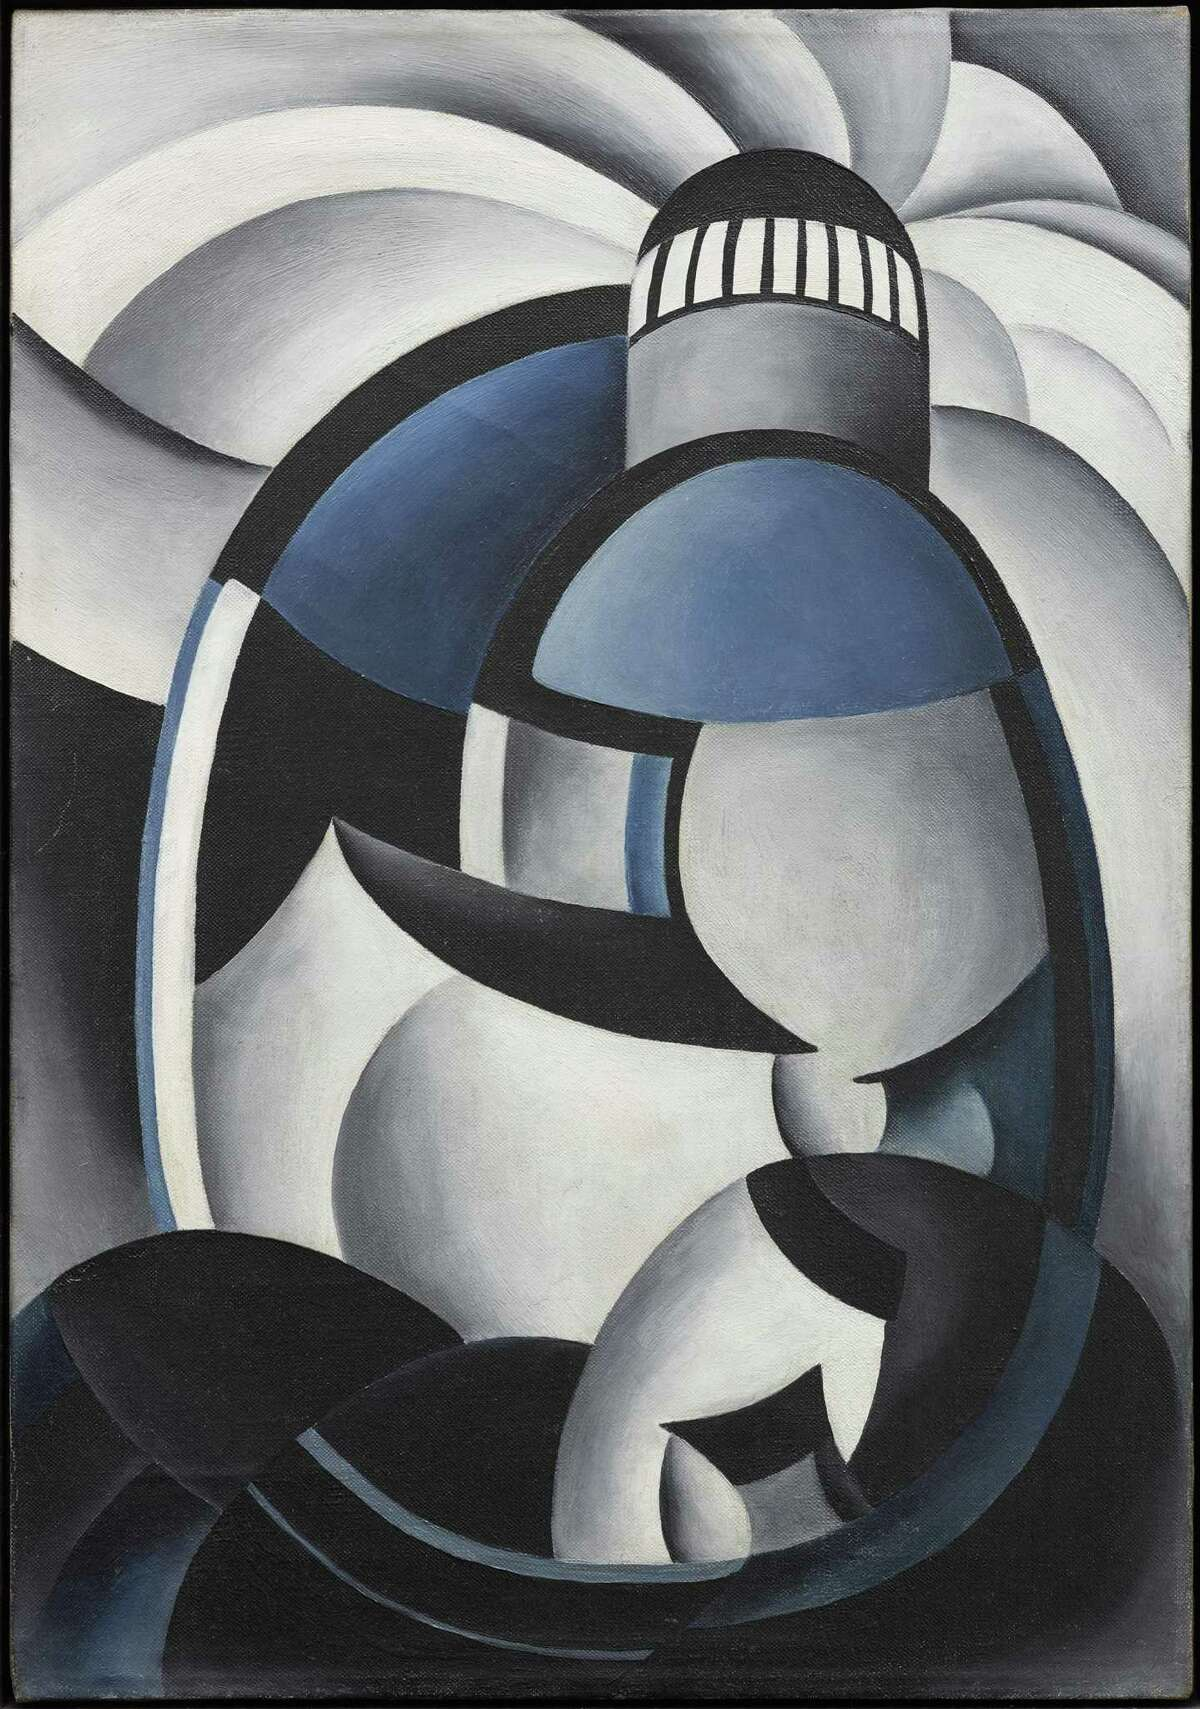 """Ida Ten Eyck O'Keeffe's """"Variation on a Lighthouse Theme II,"""" c. 1931-32, oil on canvas, is among works on view in the artist's first solo museum show, """"Escaping Georgia's Shadow"""" Nov. 18-Feb. 24."""